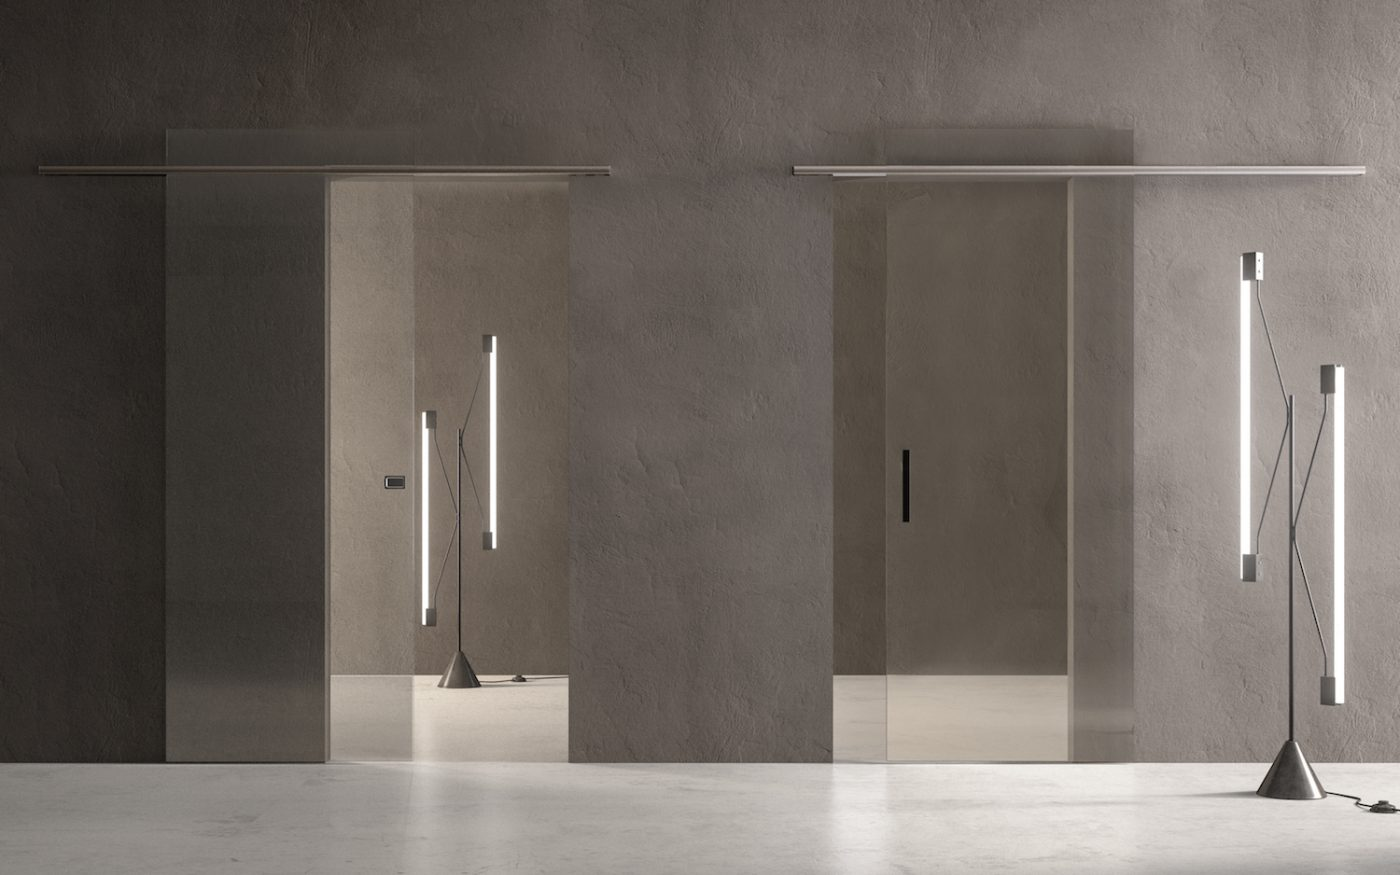 Porta Scorrevole Esterna Vetro sliding doors: recessed doors and exposed sliding doors